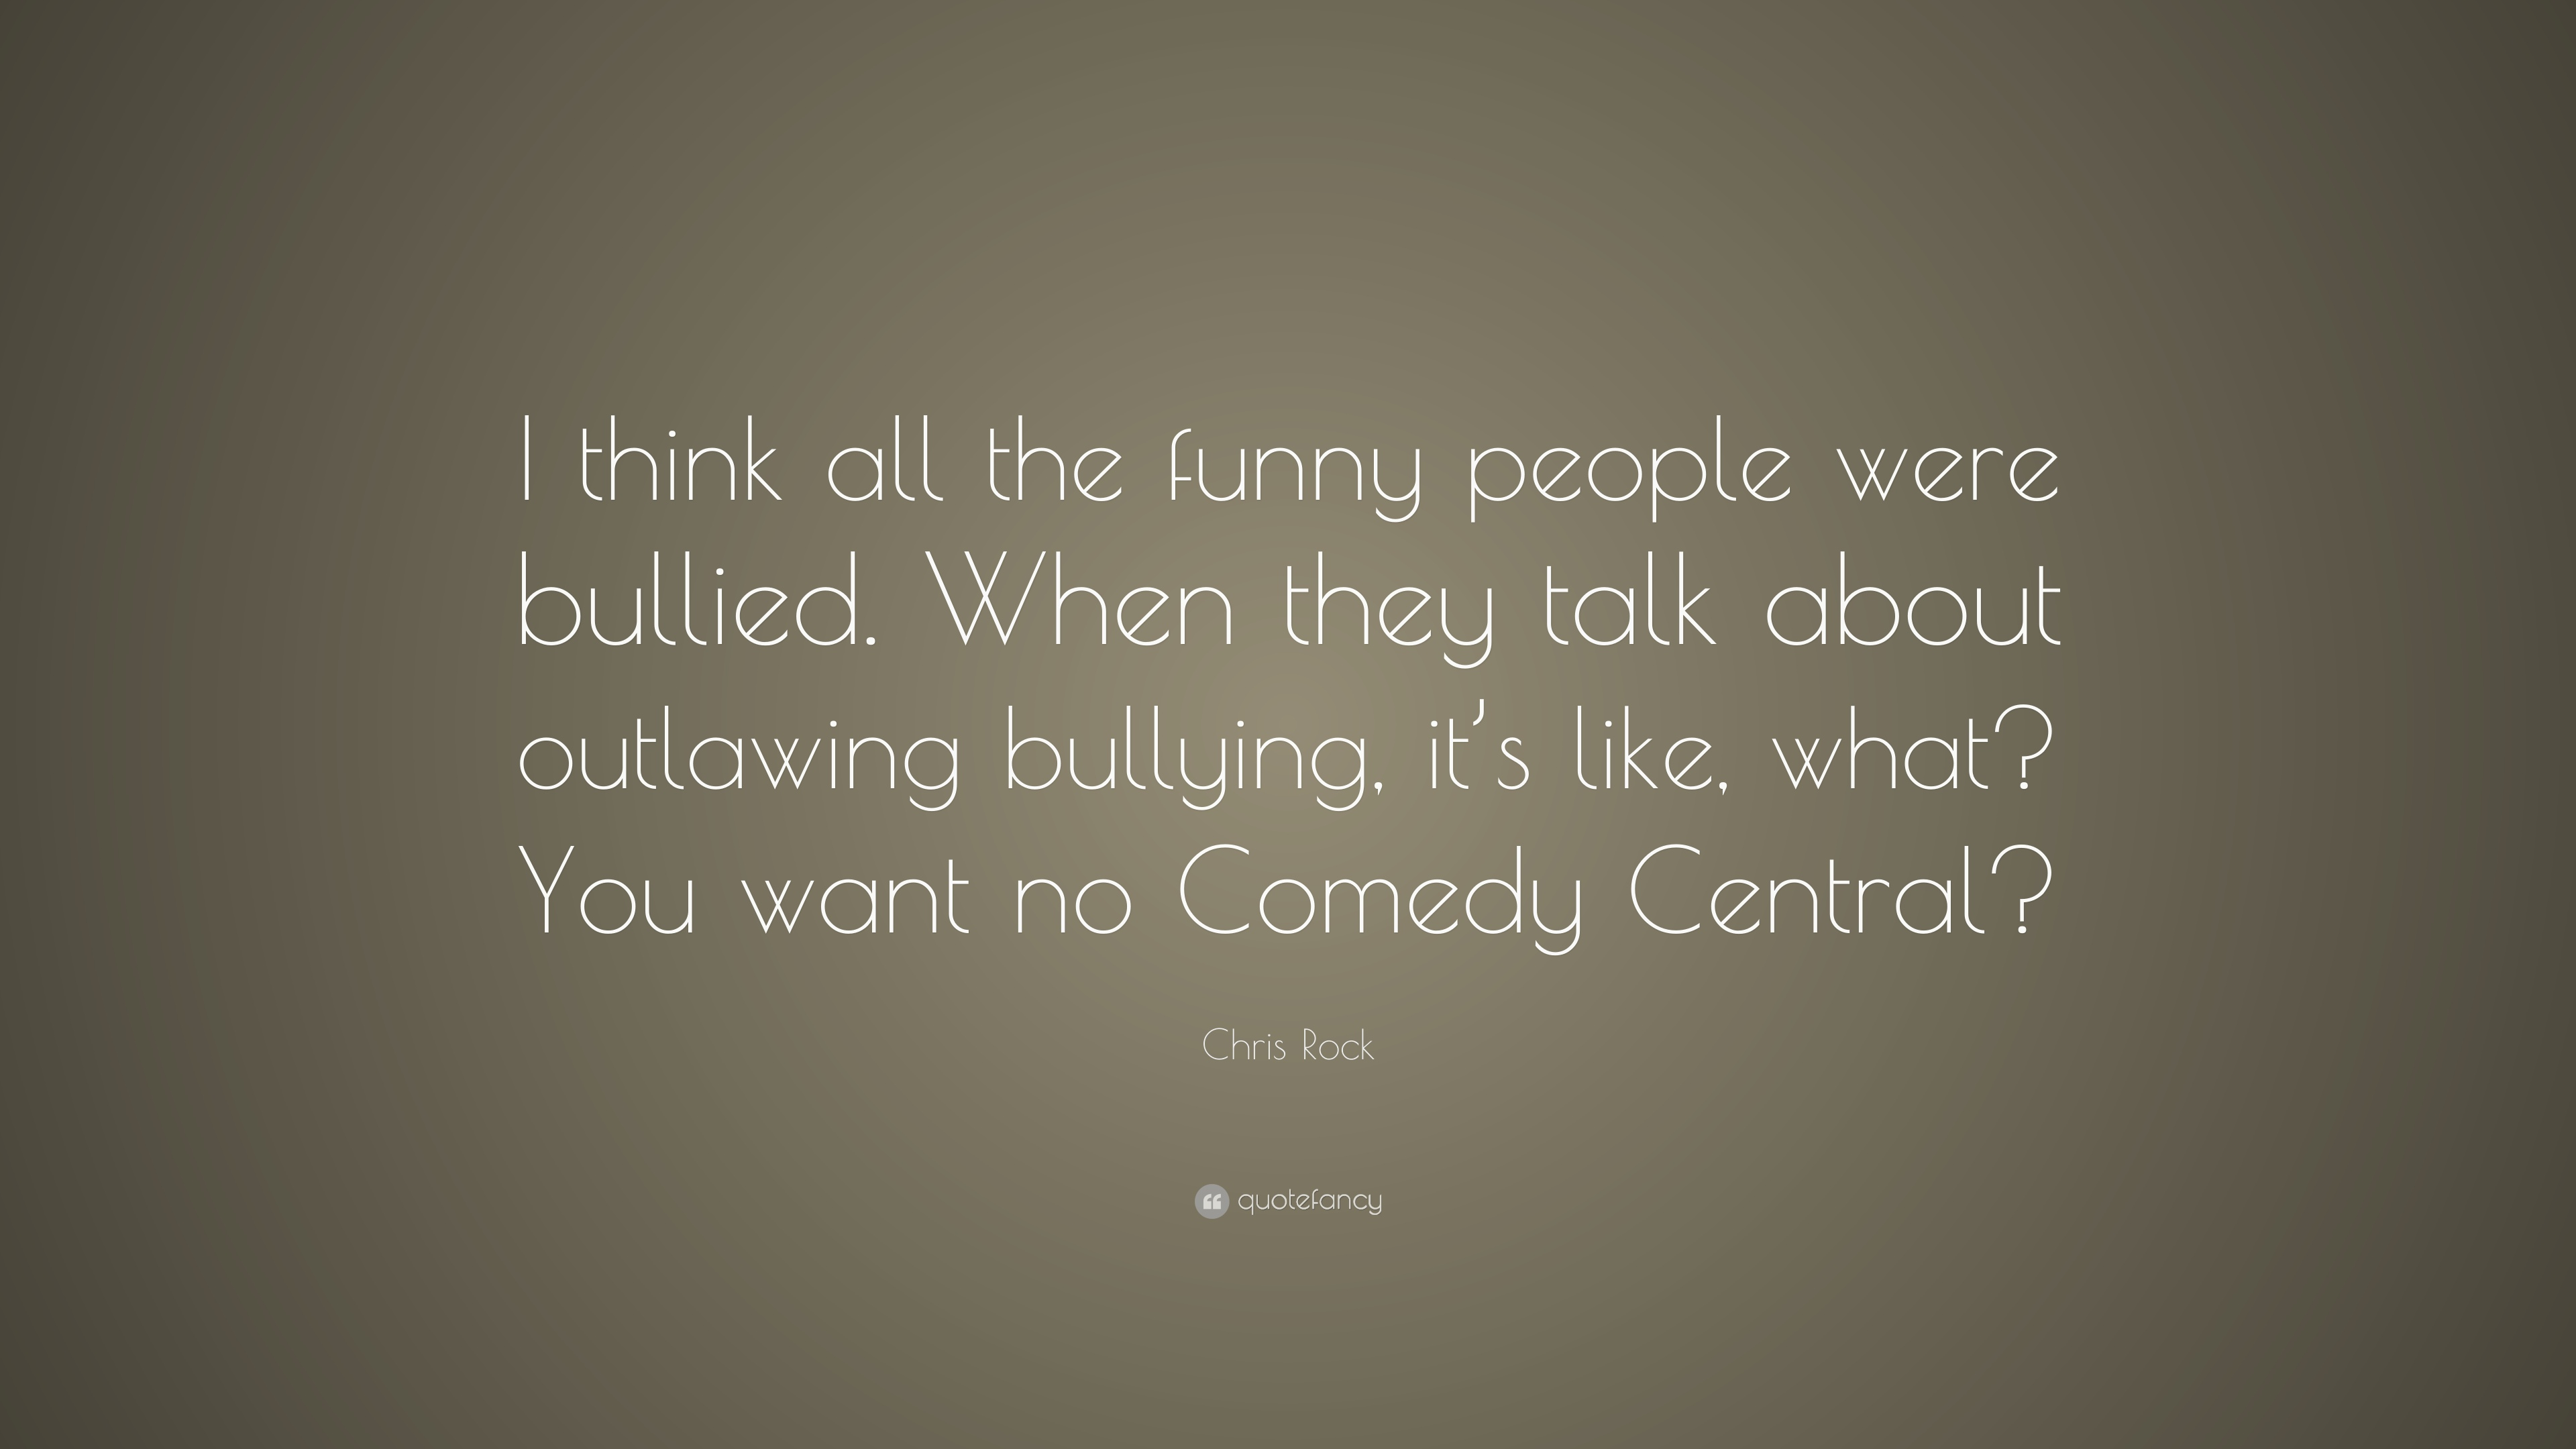 Bullying Quotes Stunning Bullying Quotes 40 Wallpapers  Quotefancy